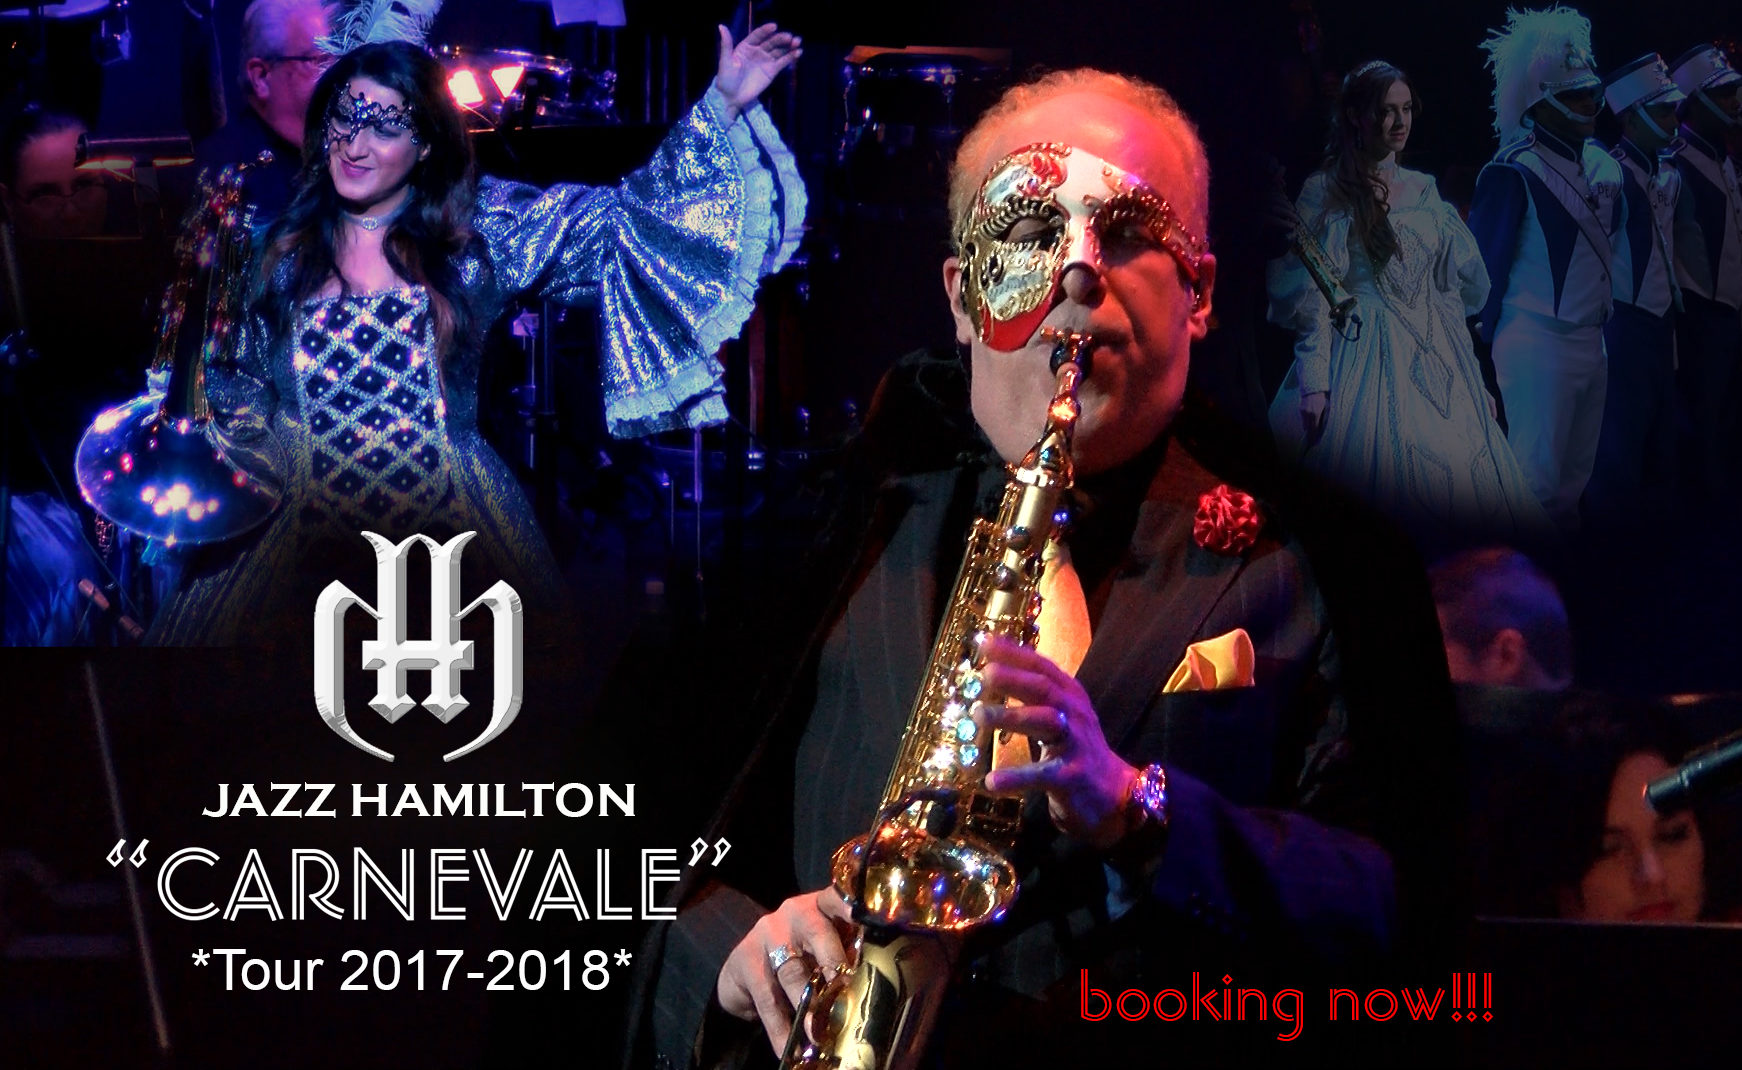 Jazz Hamilton CARNEVALE TOUR 2017-2018 booking now